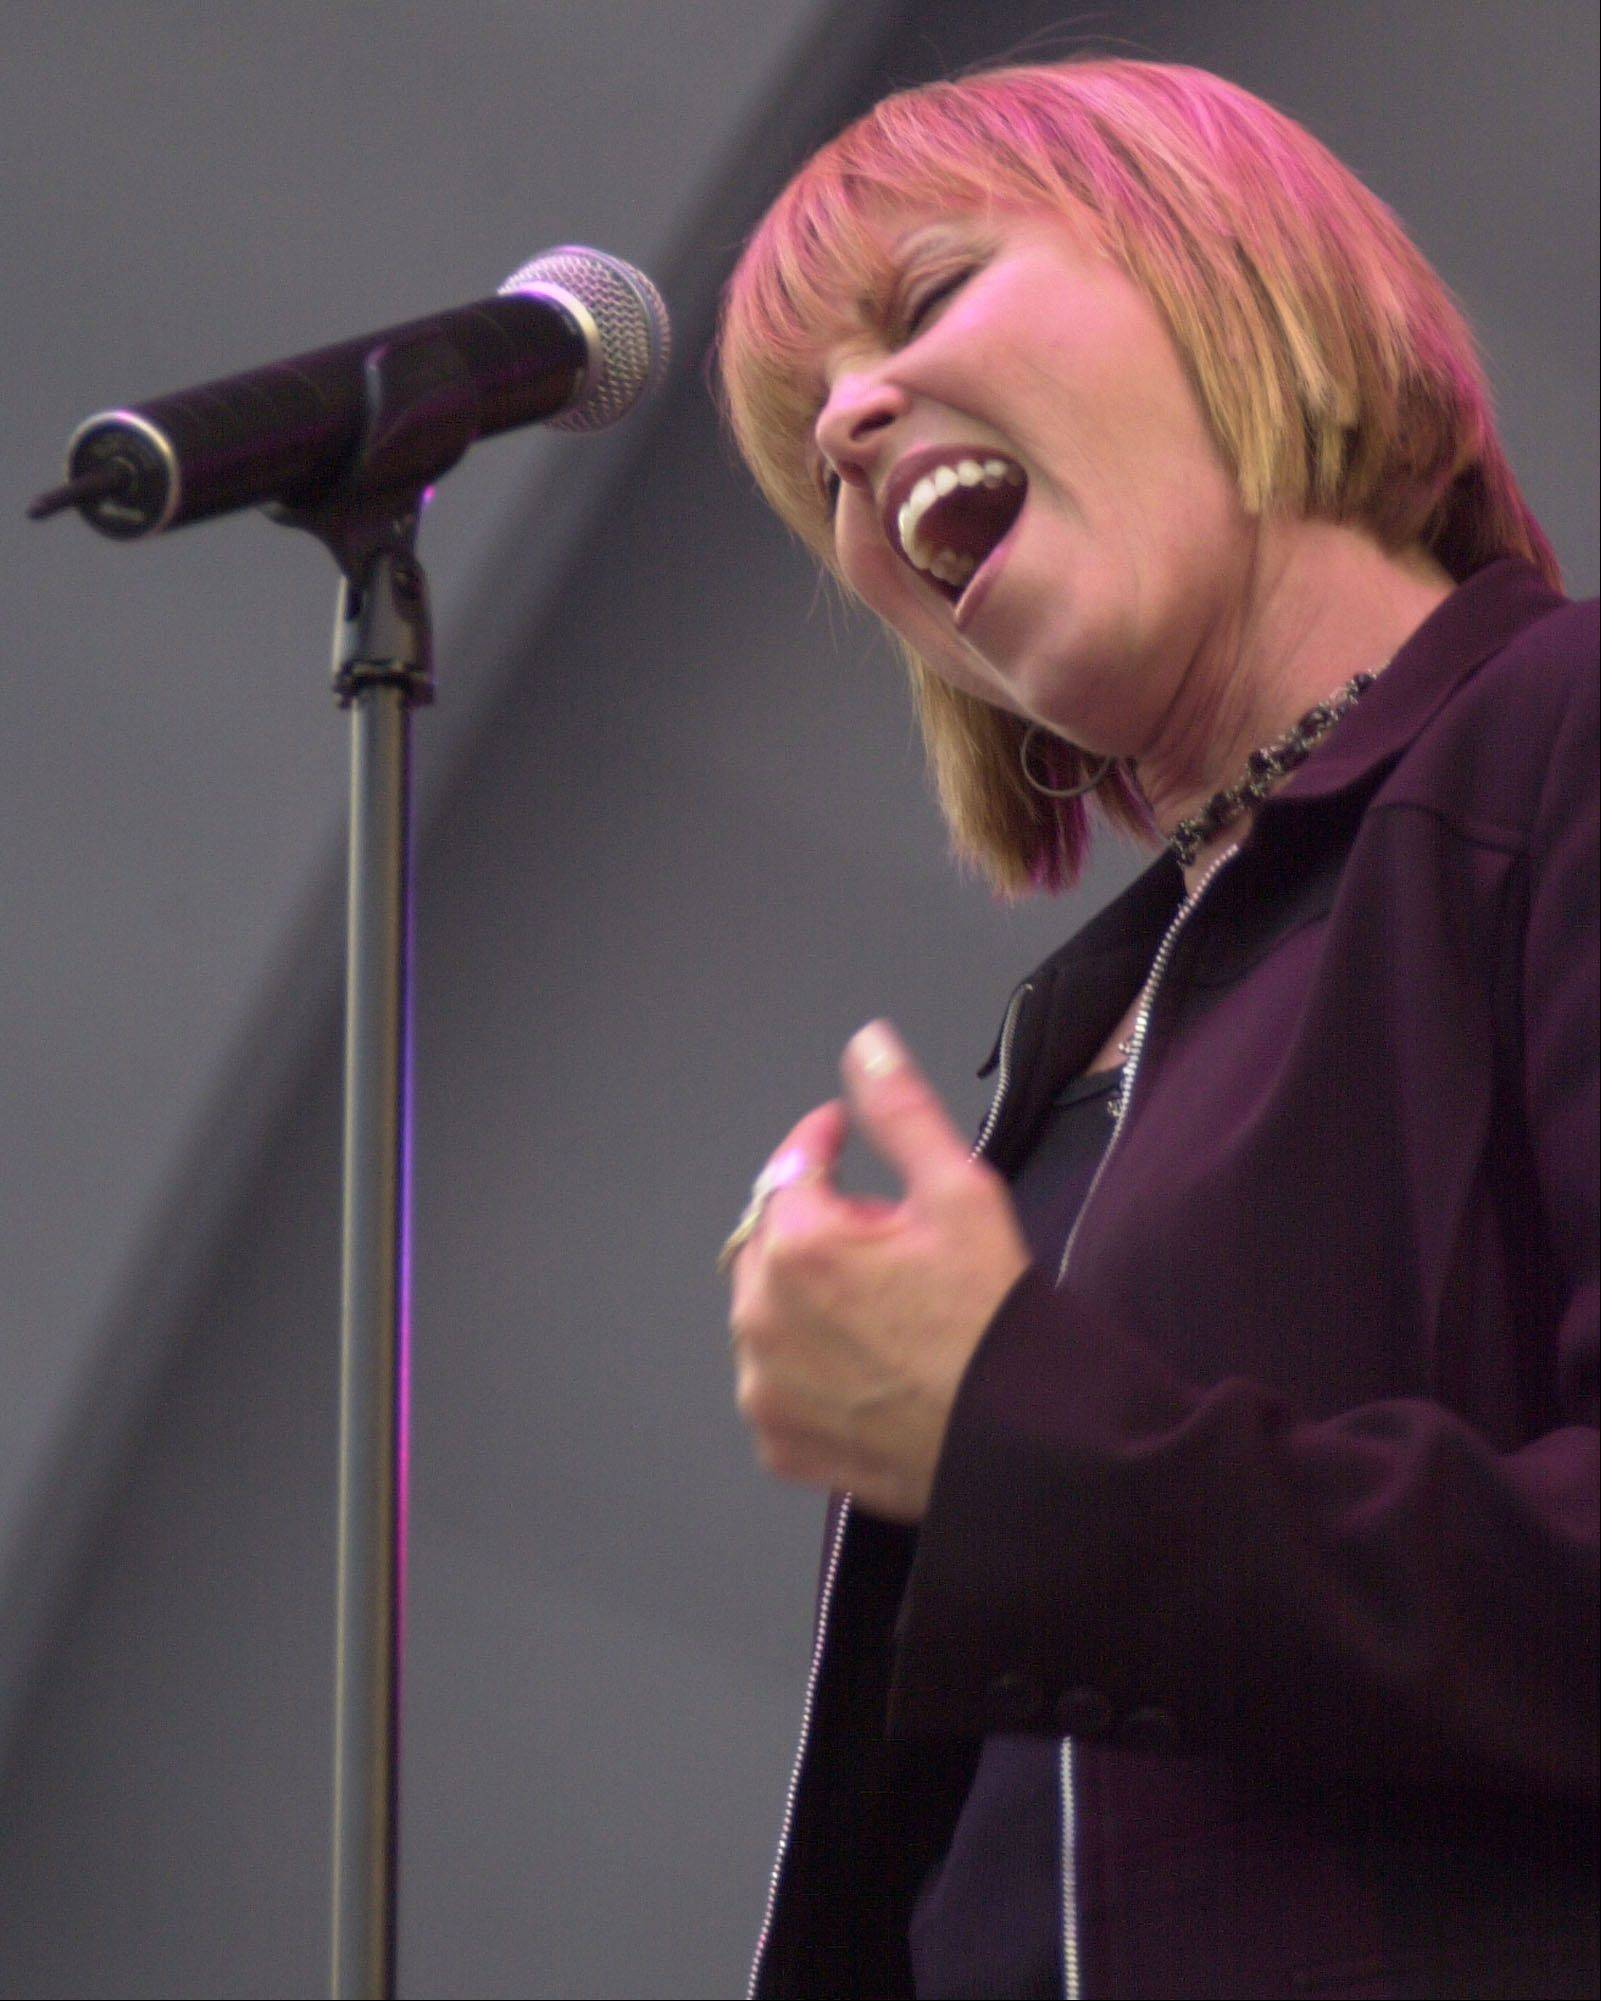 Pat Benatar is slated to perform Nov. 10 as part of North Central College's Homecoming celebration in Naperville.